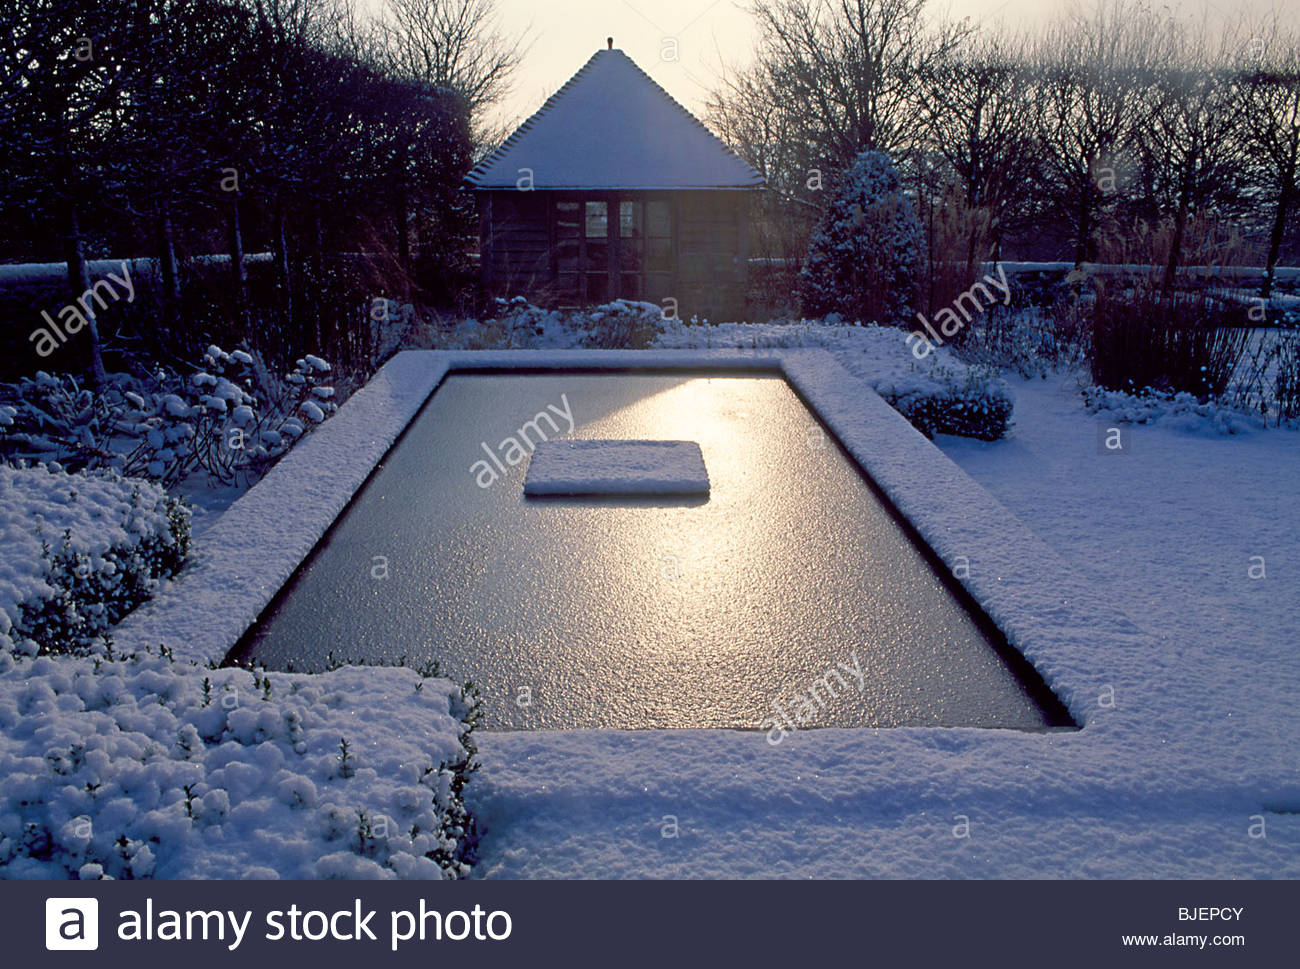 garden winter gazebo room store rectangular minimal pool snow low